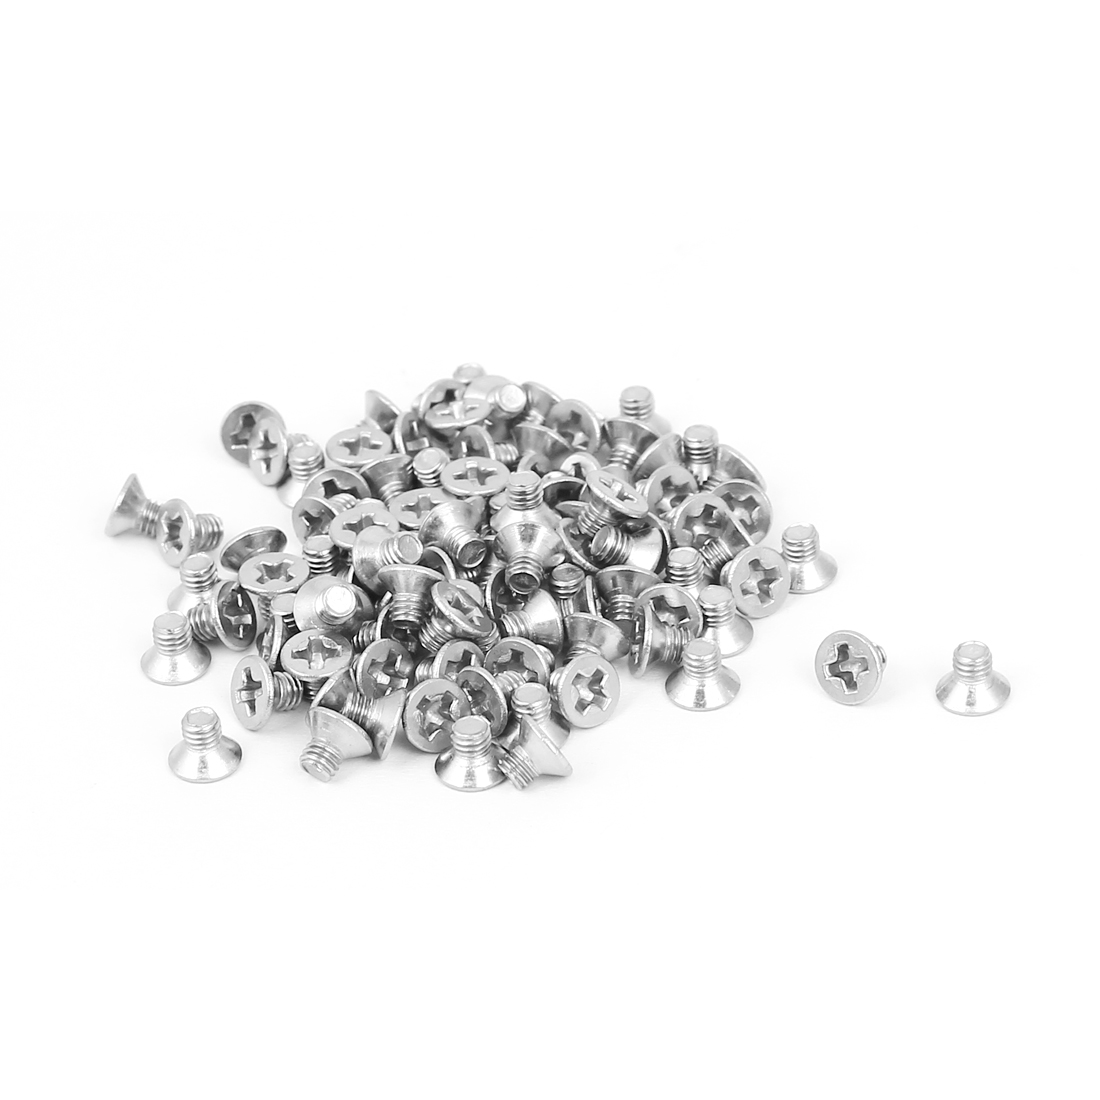 M3x4mm Phillips Flat Countersunk Head Machine Screws Silver Tone 100pcs